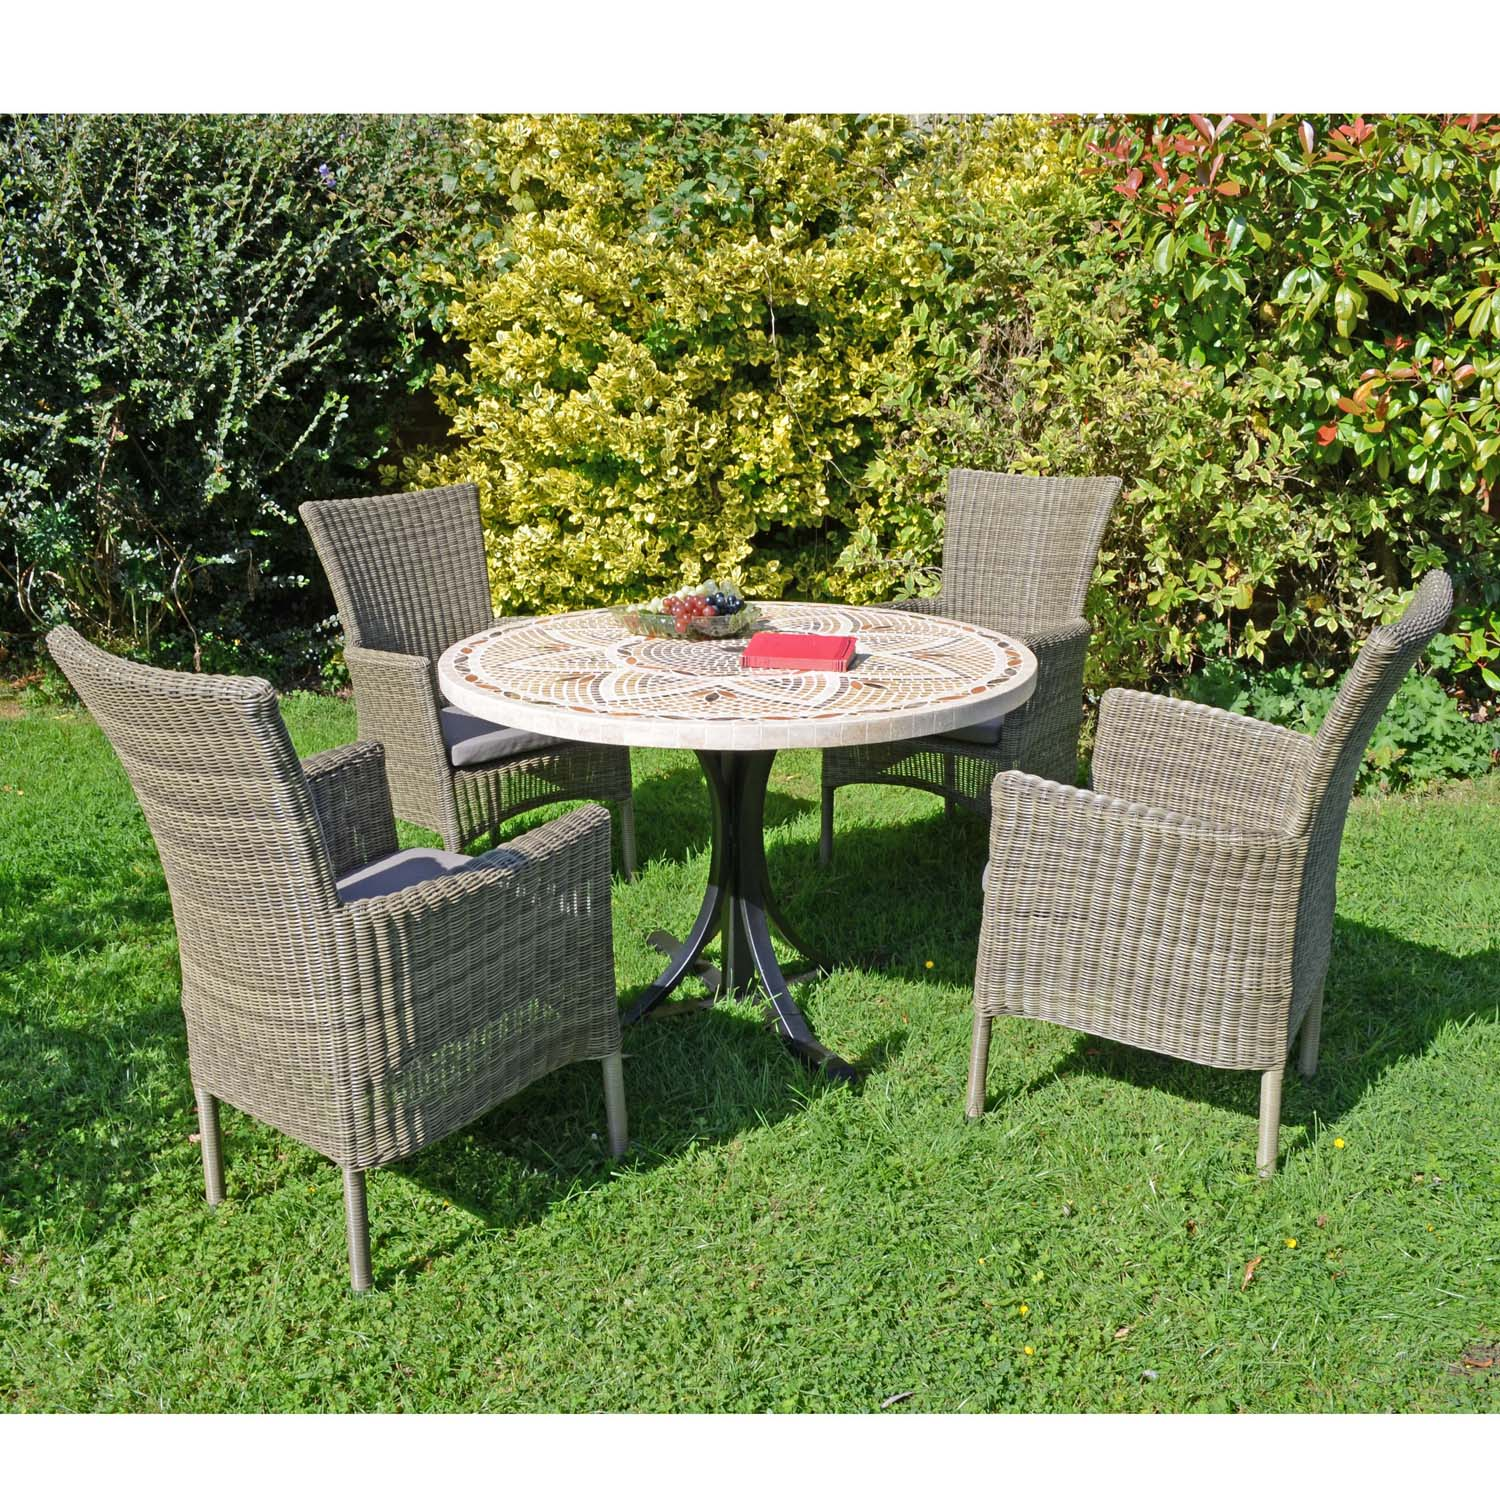 Byron Manor Montpellier Garden Dining Table With 4 Dorchester Chairs Set - Ruby's Garden Boutique